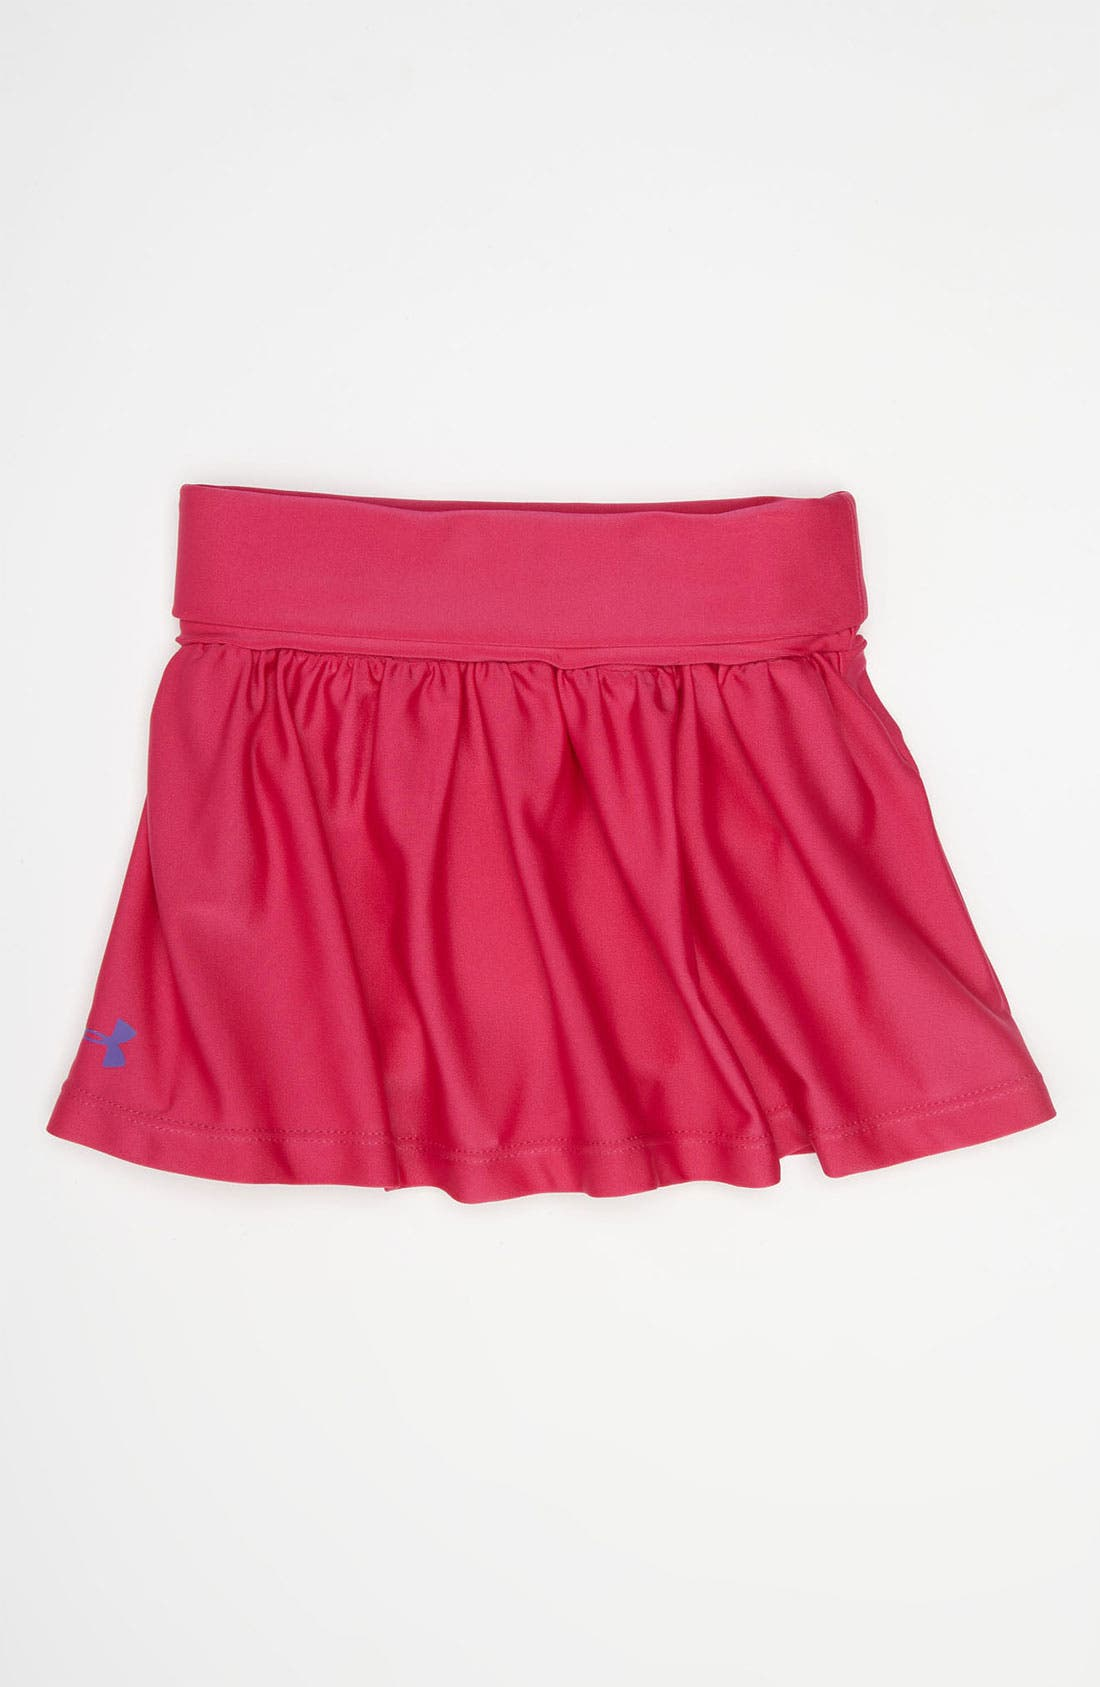 Main Image - Under Armour Tennis Skirt (Toddler)